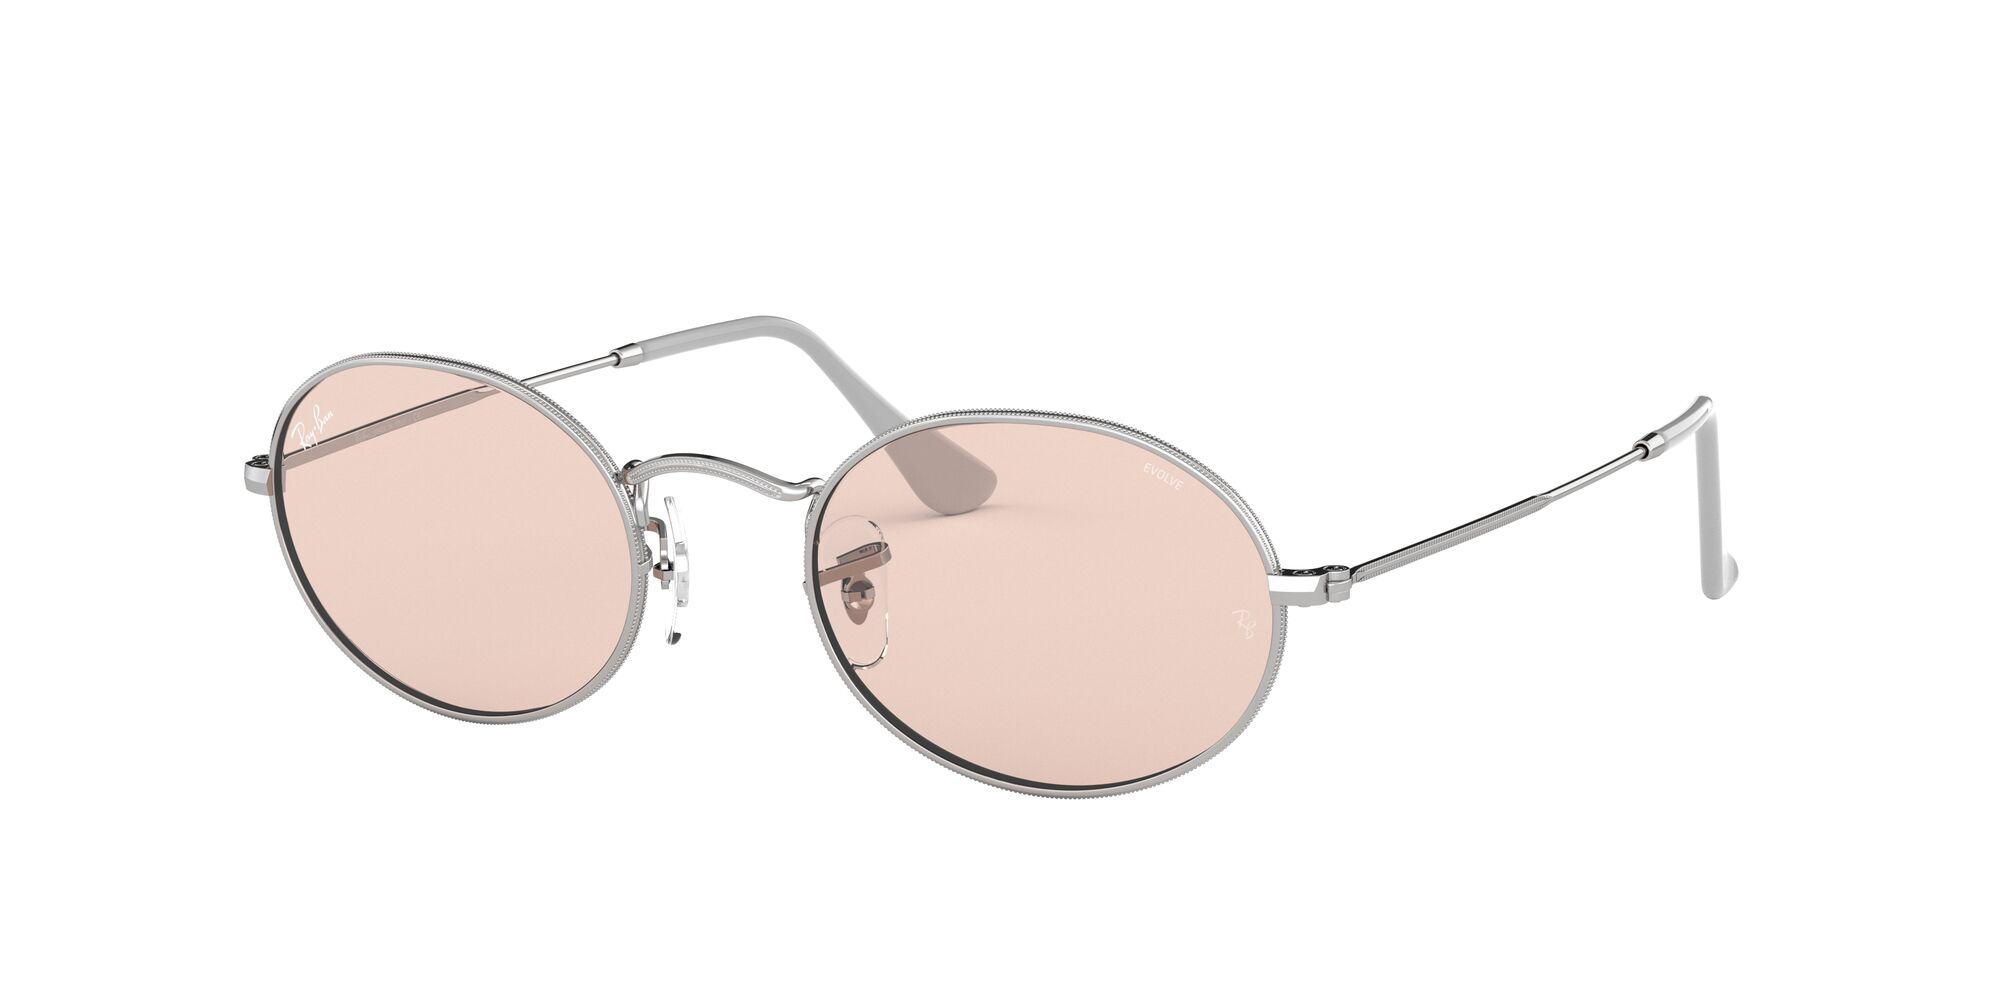 Angle_Left01 Ray-Ban Ray-Ban 0RB3547 003/T5 53/21 Zilver/Roze